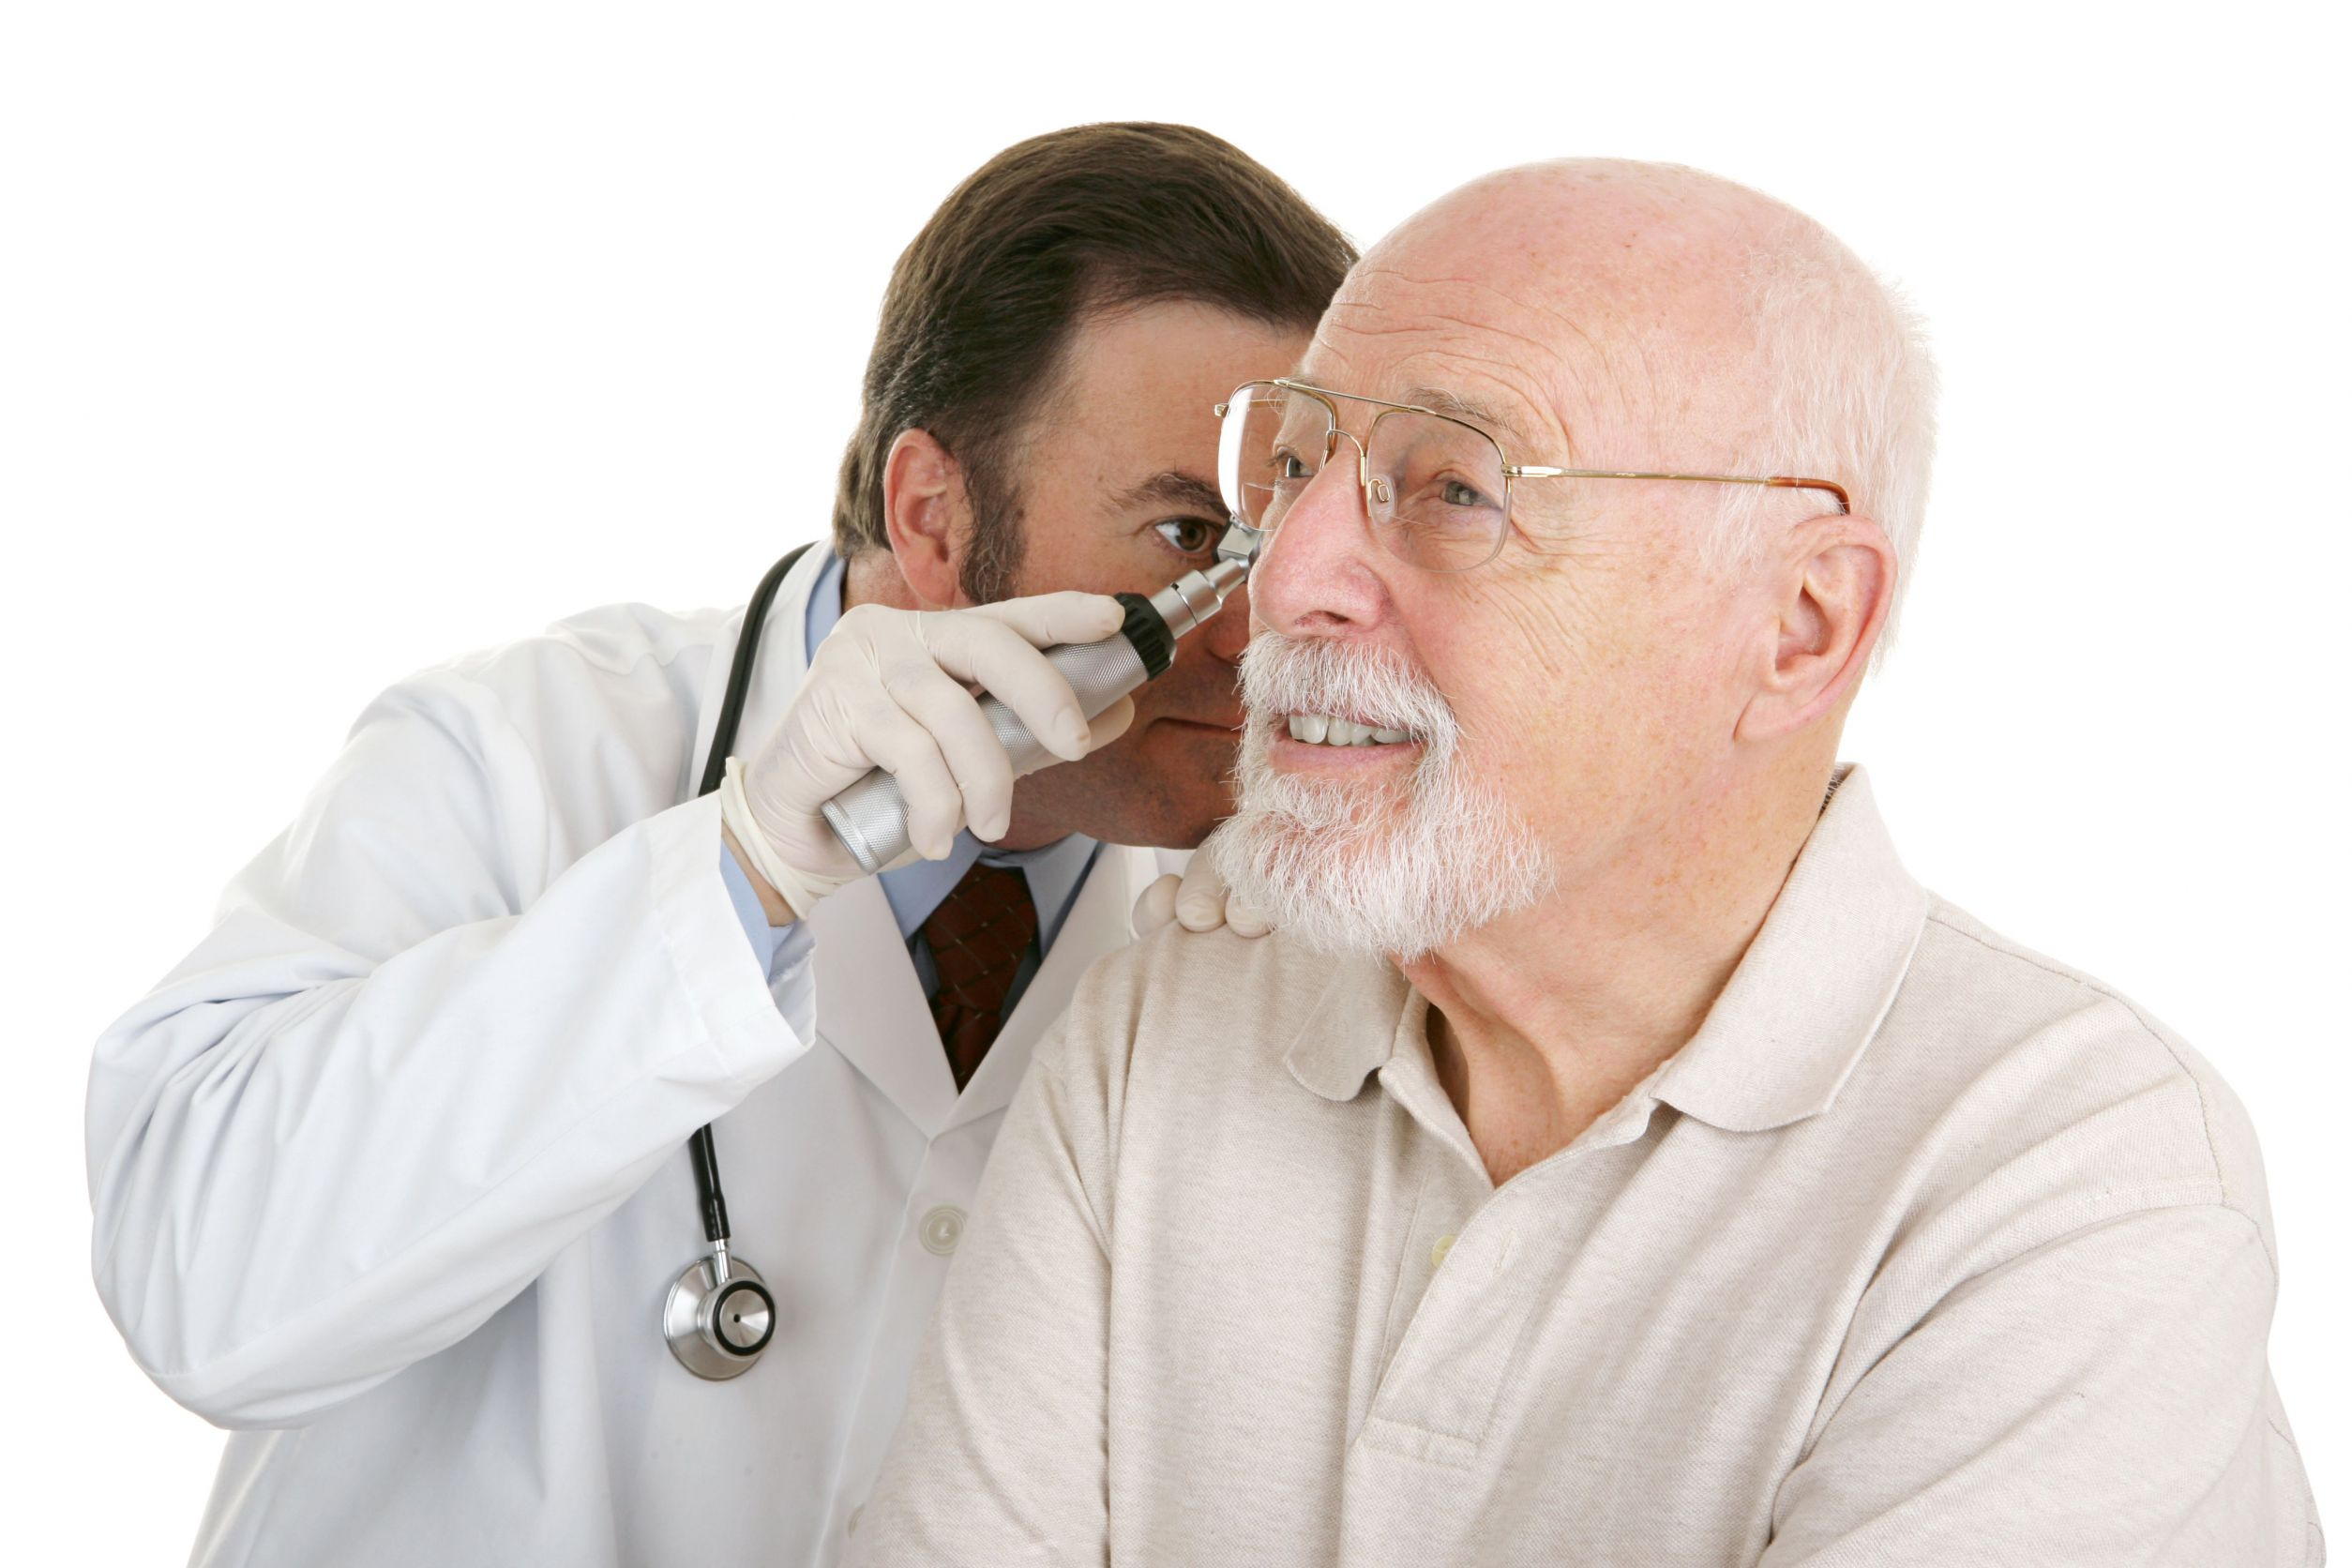 Suffering Hearing Loss in Grand Rapids, MI? Hire Licensed Audiologists and Hearing Specialists